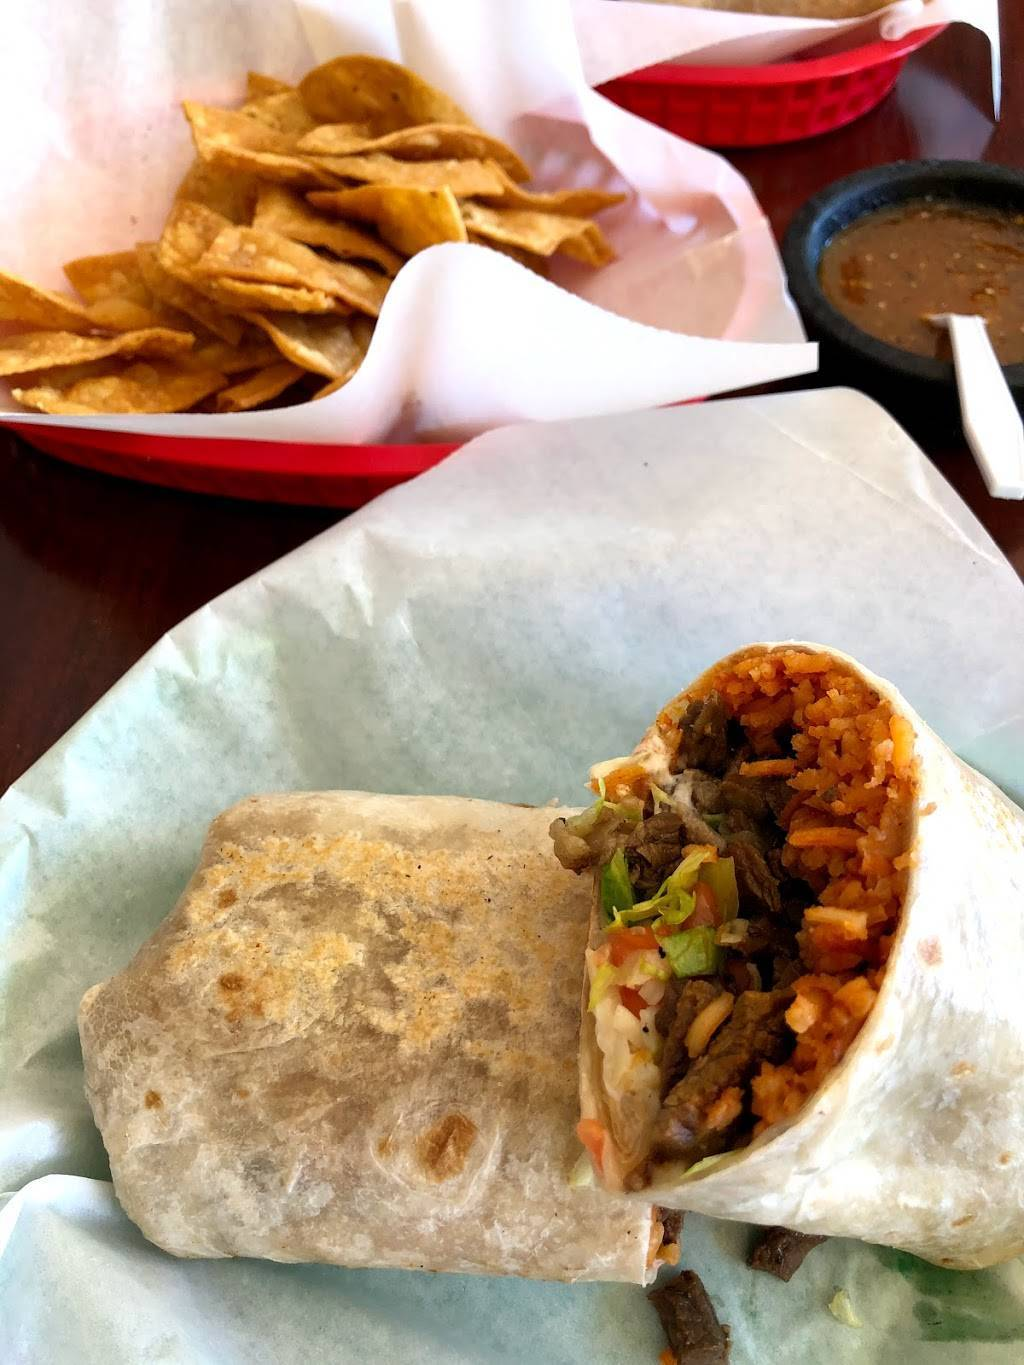 Tacos Jerez | restaurant | 1410 Golf Rd, Rolling Meadows, IL 60008, USA | 8472585524 OR +1 847-258-5524